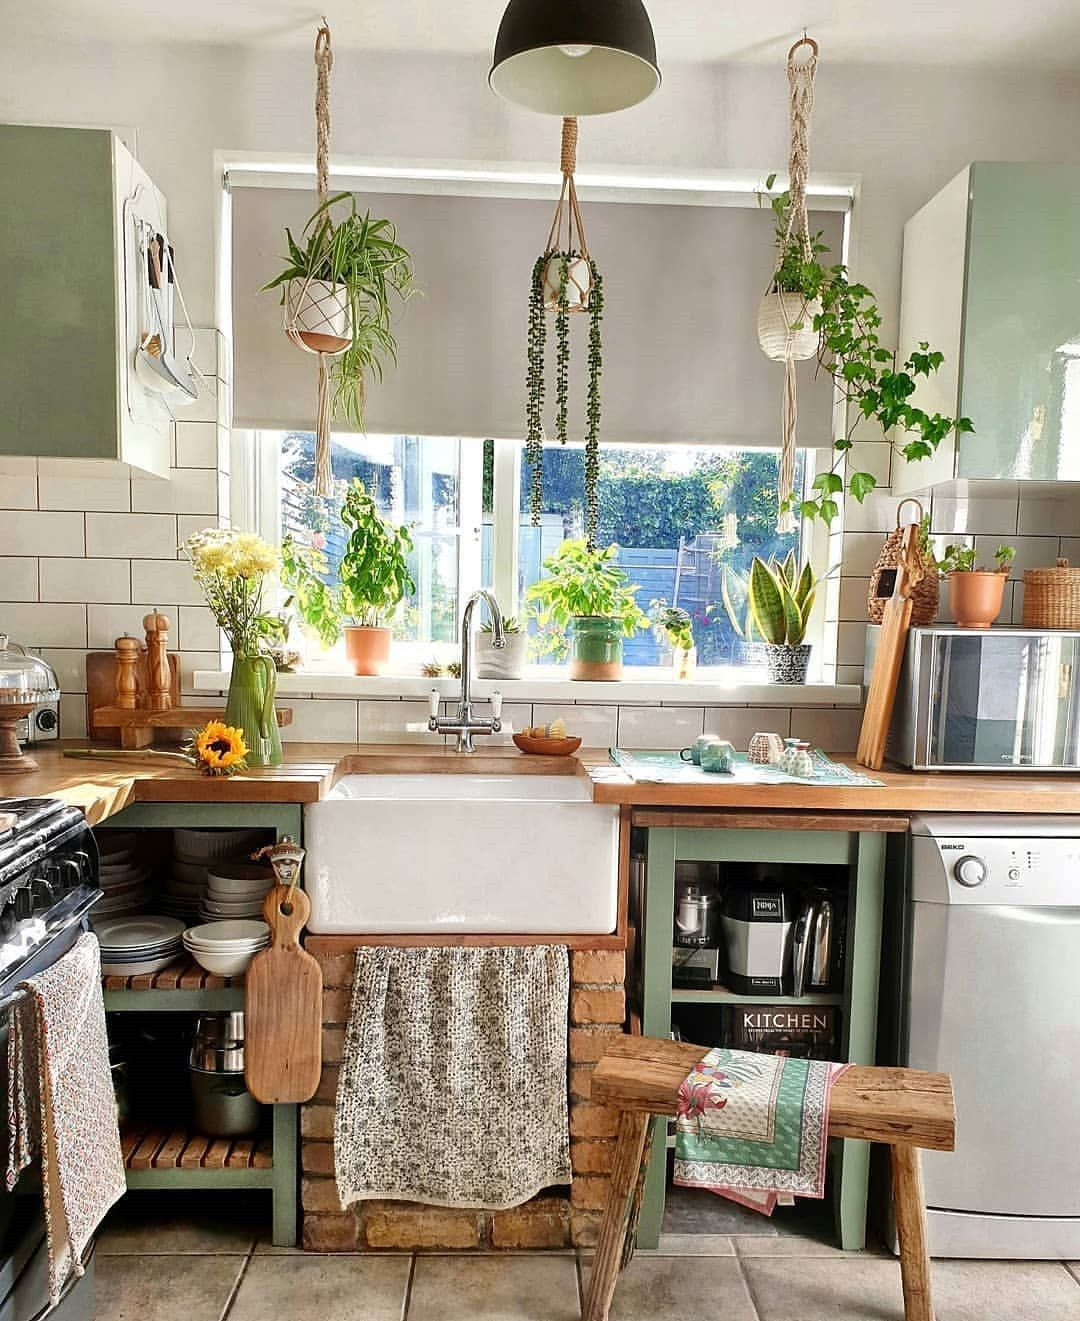 26+ Earthy kitchen decorating ideas trends